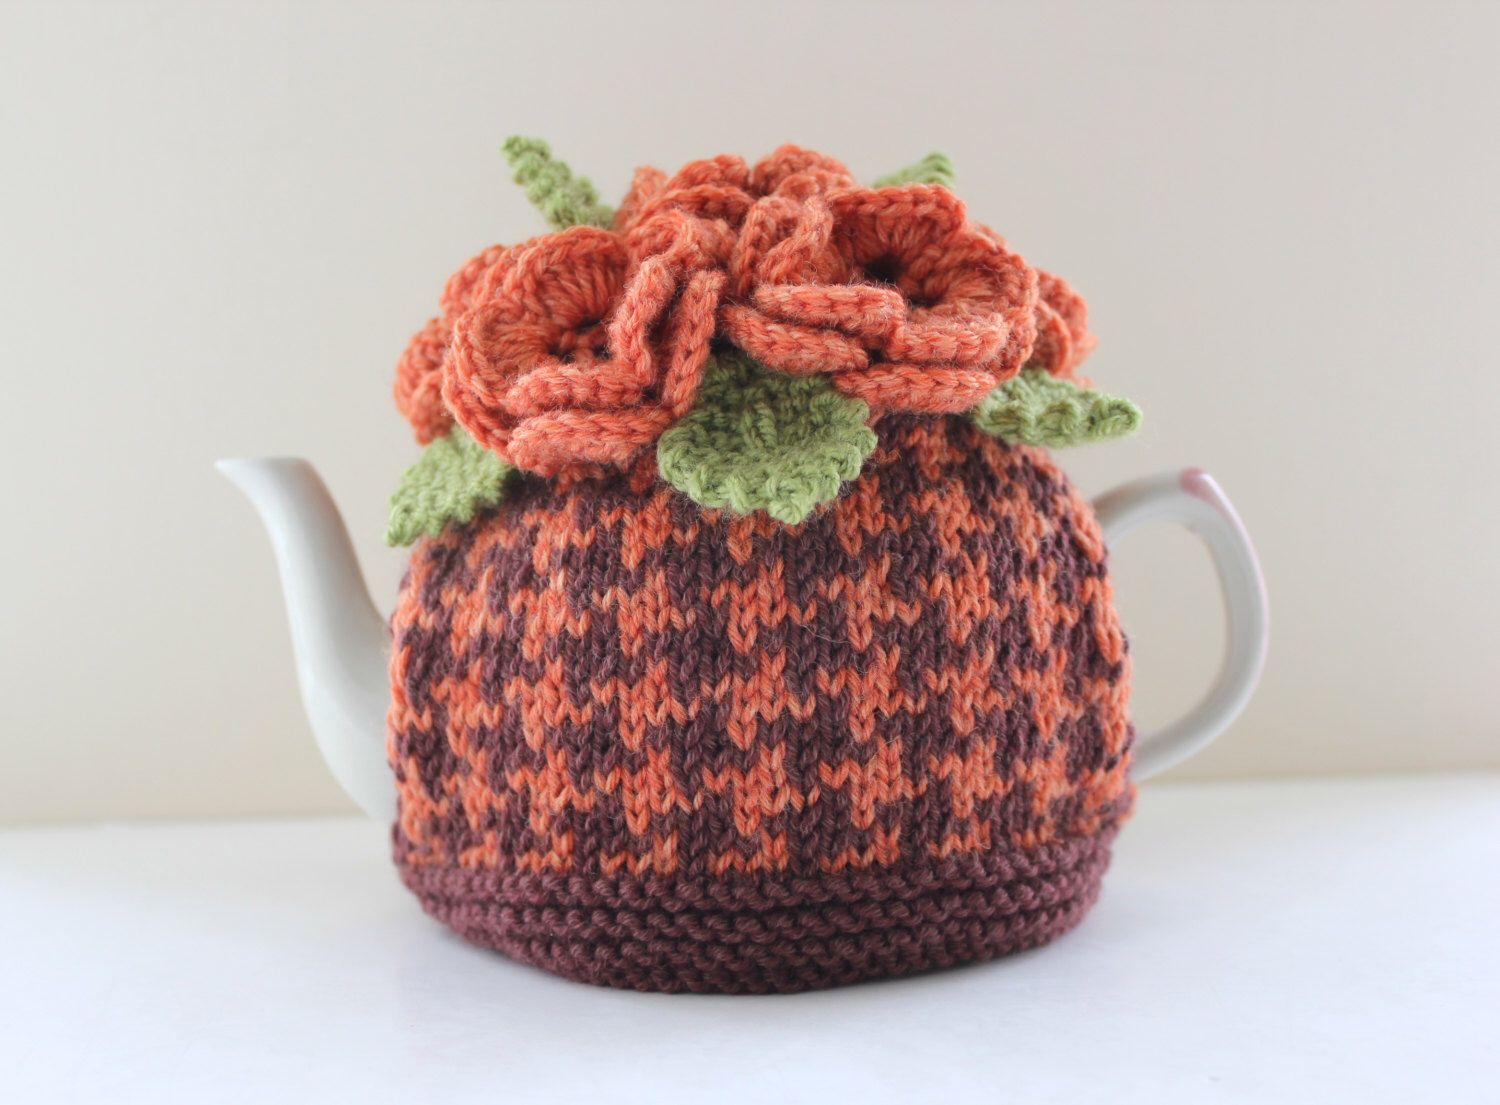 Hand-knitted Floral 'Spiced Pumpkin' Houndstooth tea cosy in cashmerino. https://www.etsy.com/uk/listing/229617970/hand-knitted-floral-spiced-pumpkin